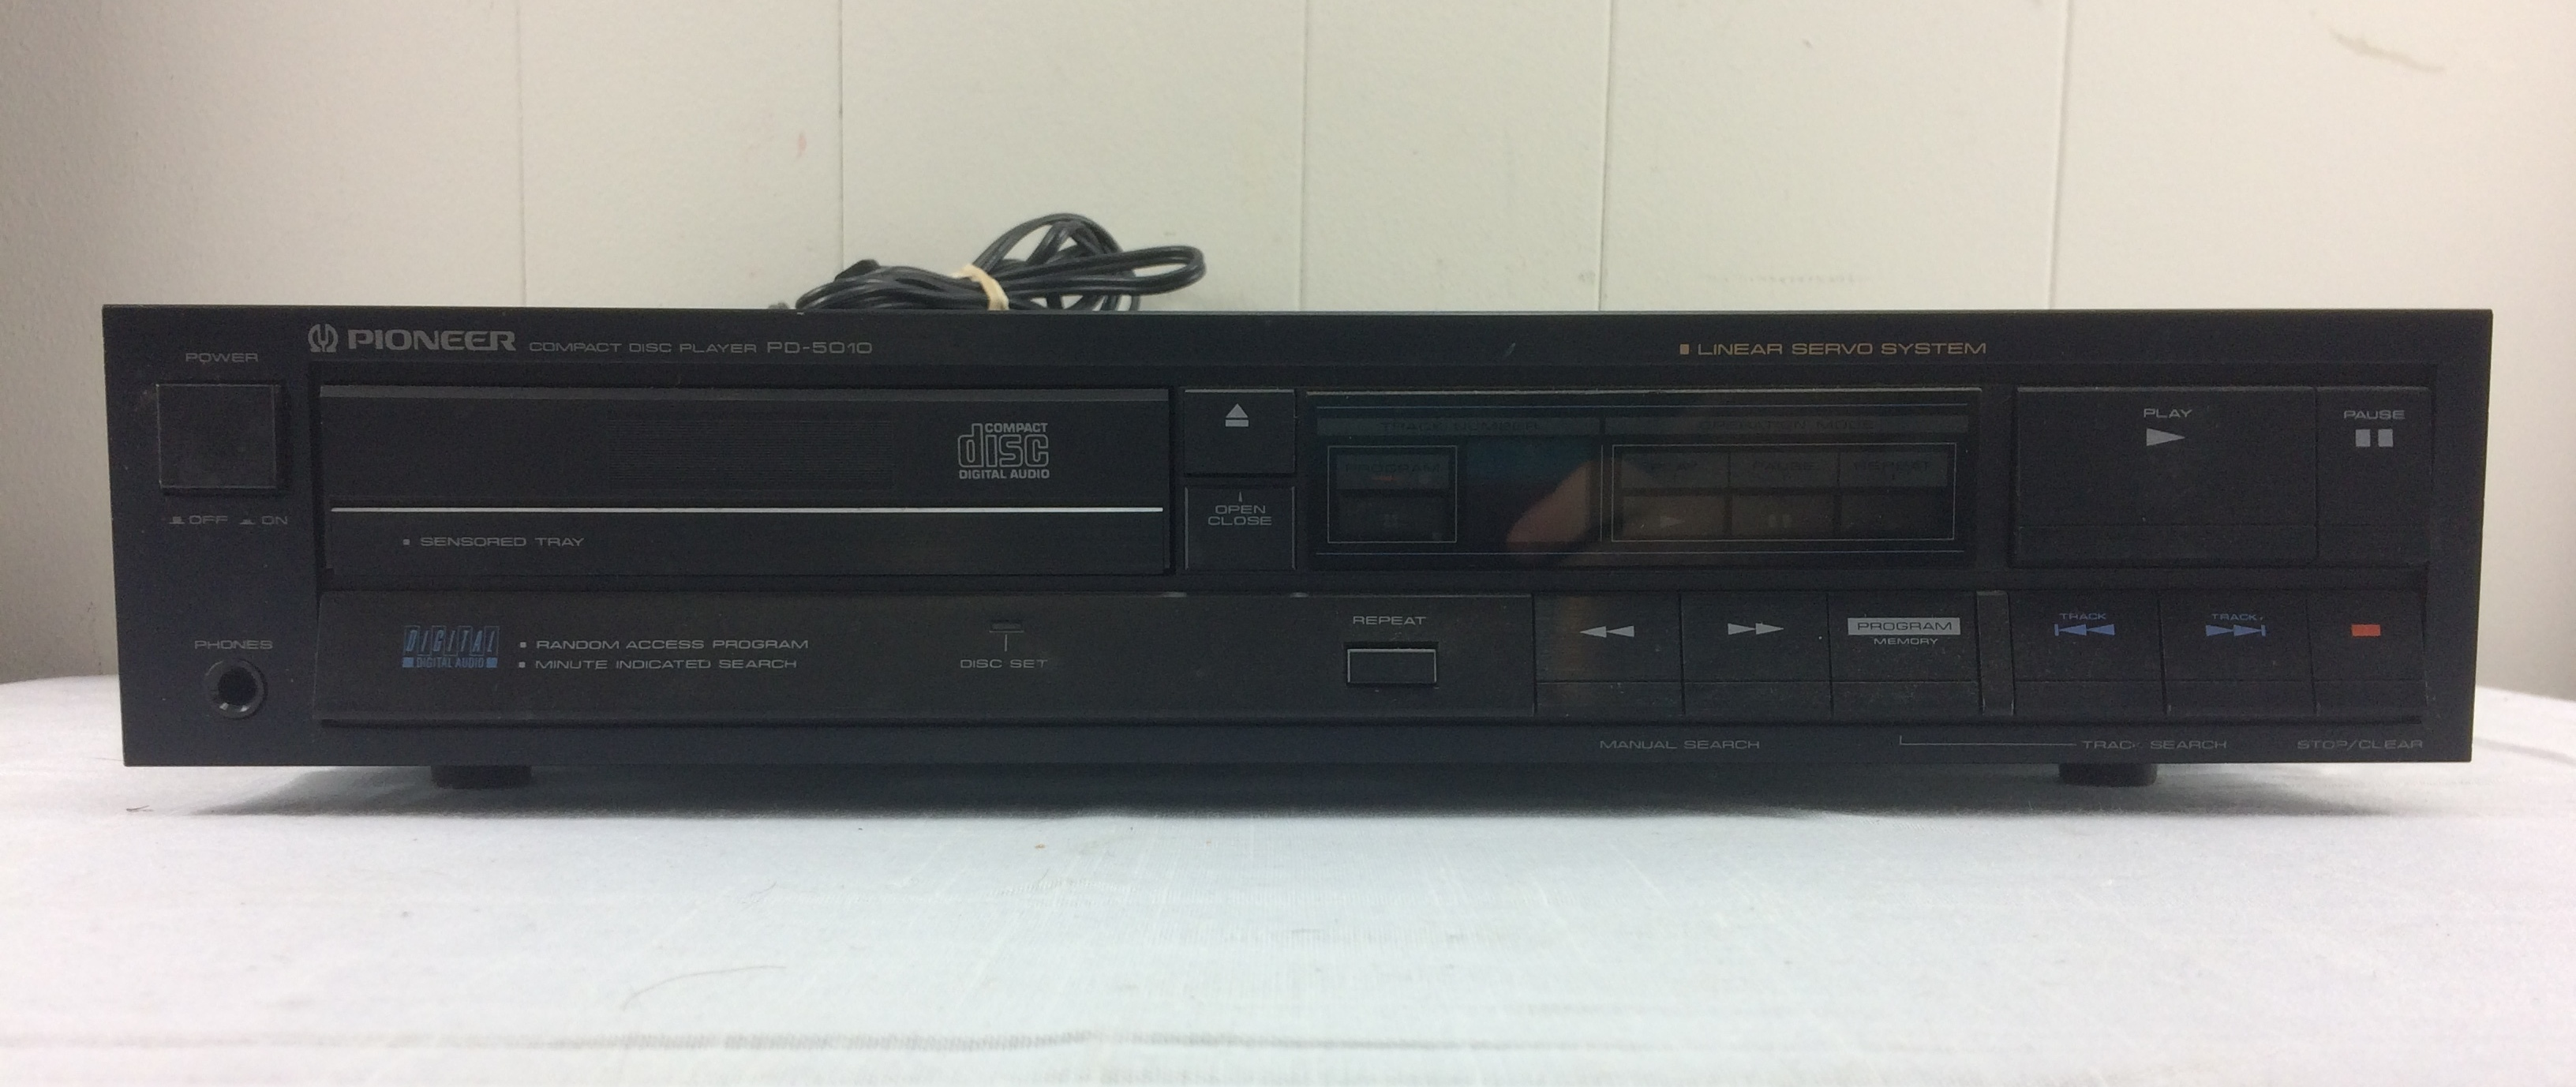 Vintage Pioneer PD-5010 Stereo CD Player - No Remote